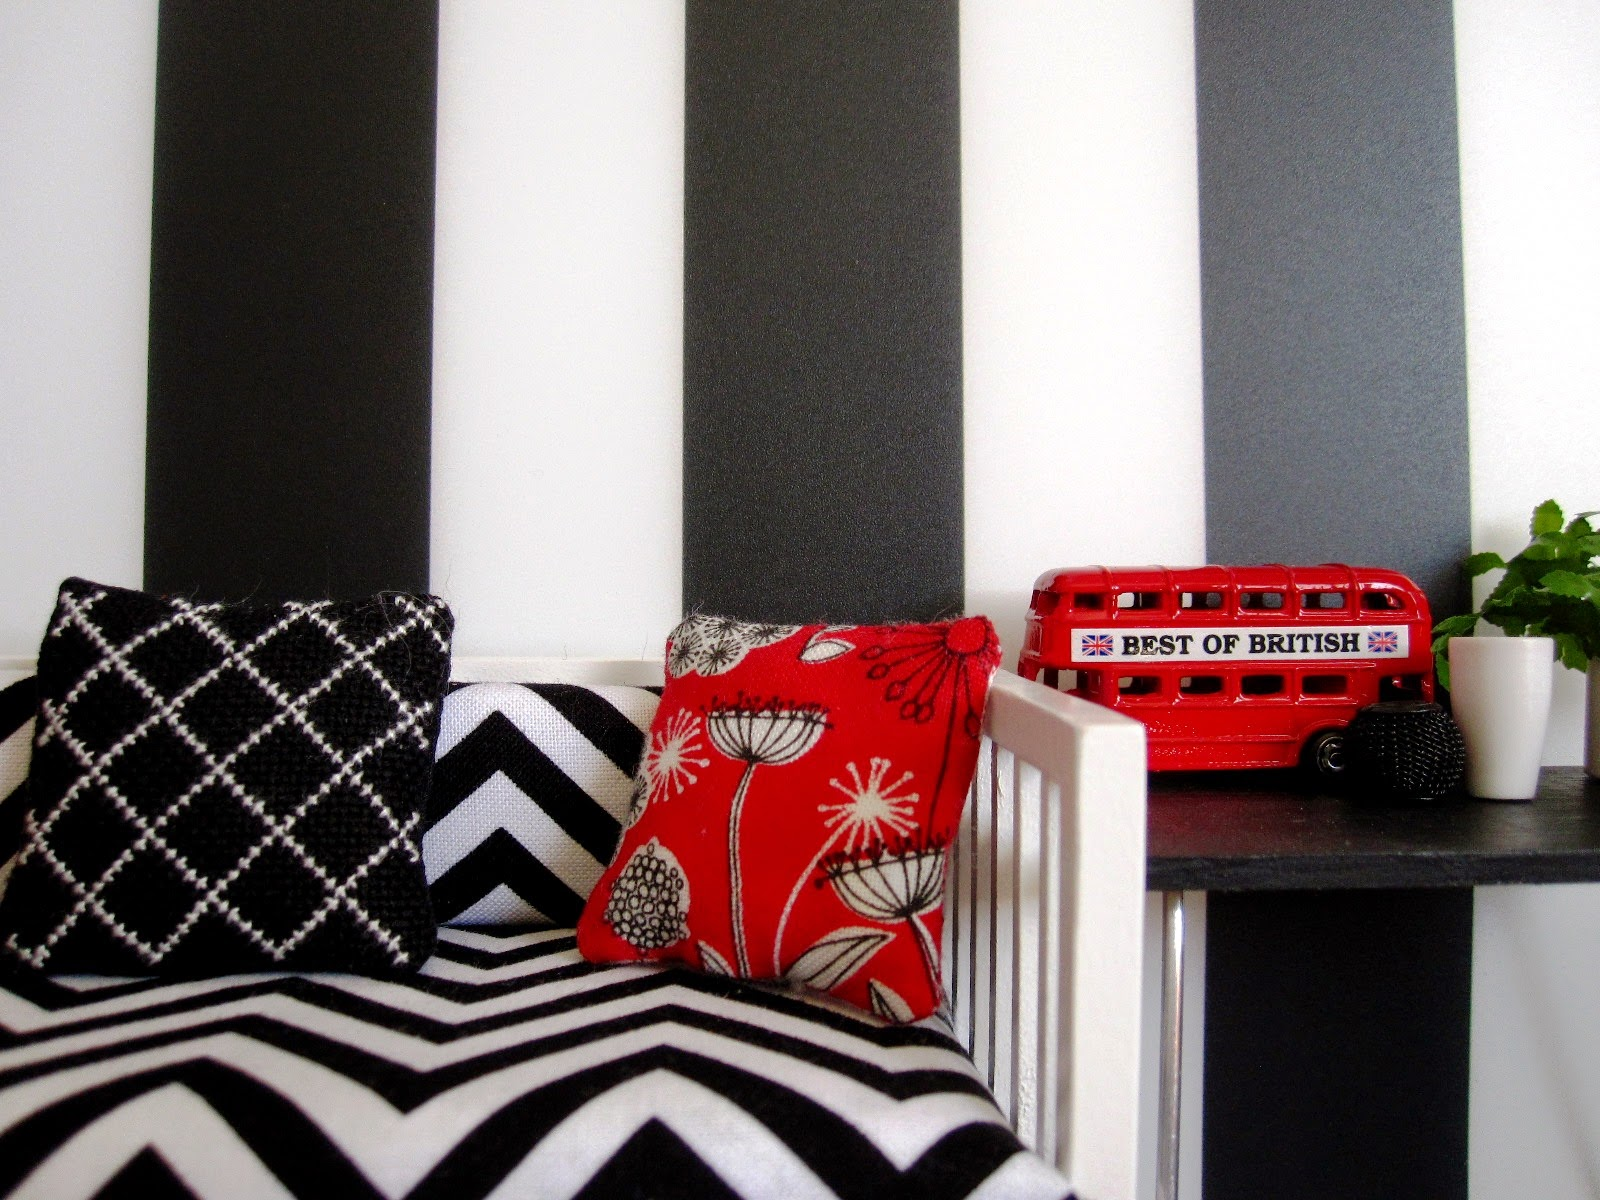 Modern miniature black white and red scene of a day bed with cushions next to a table displaying a model London bus and vases.